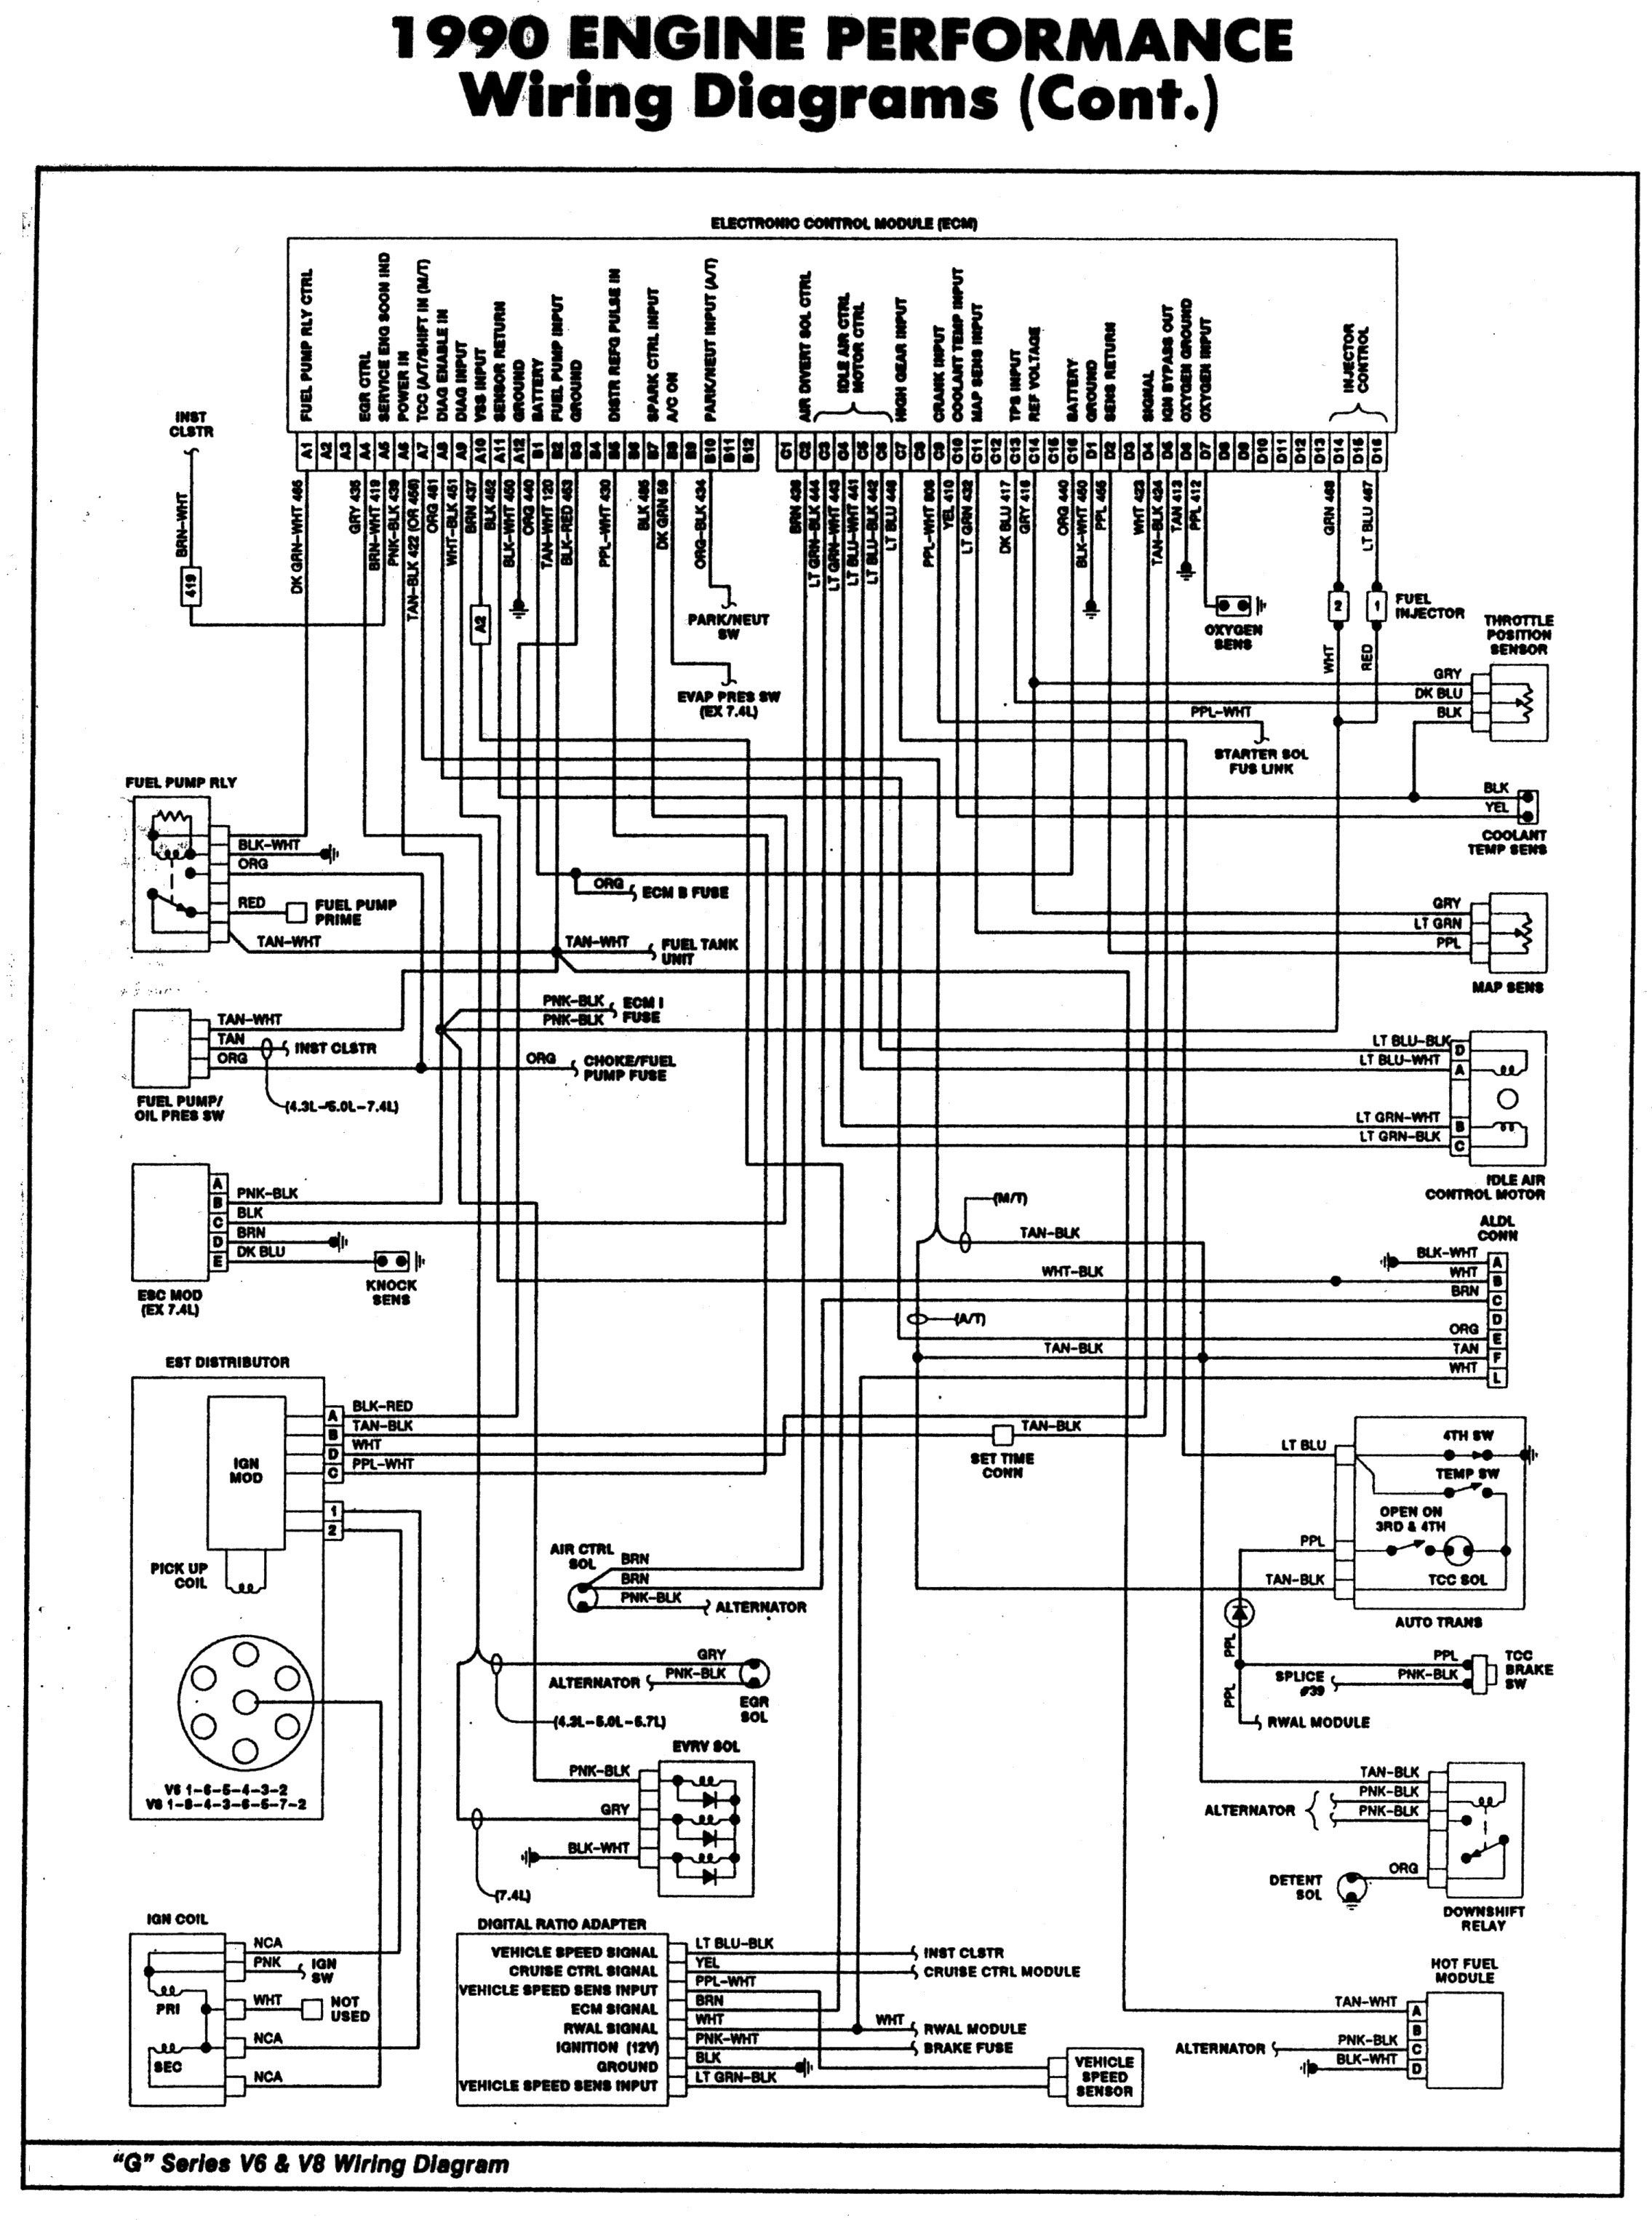 2000 gm truck wiring diagram wiring diagram de rh 9 tnmp juliusdoerner de chevrolet silverado trailer wiring diagram chevrolet silverado trailer wiring diagram